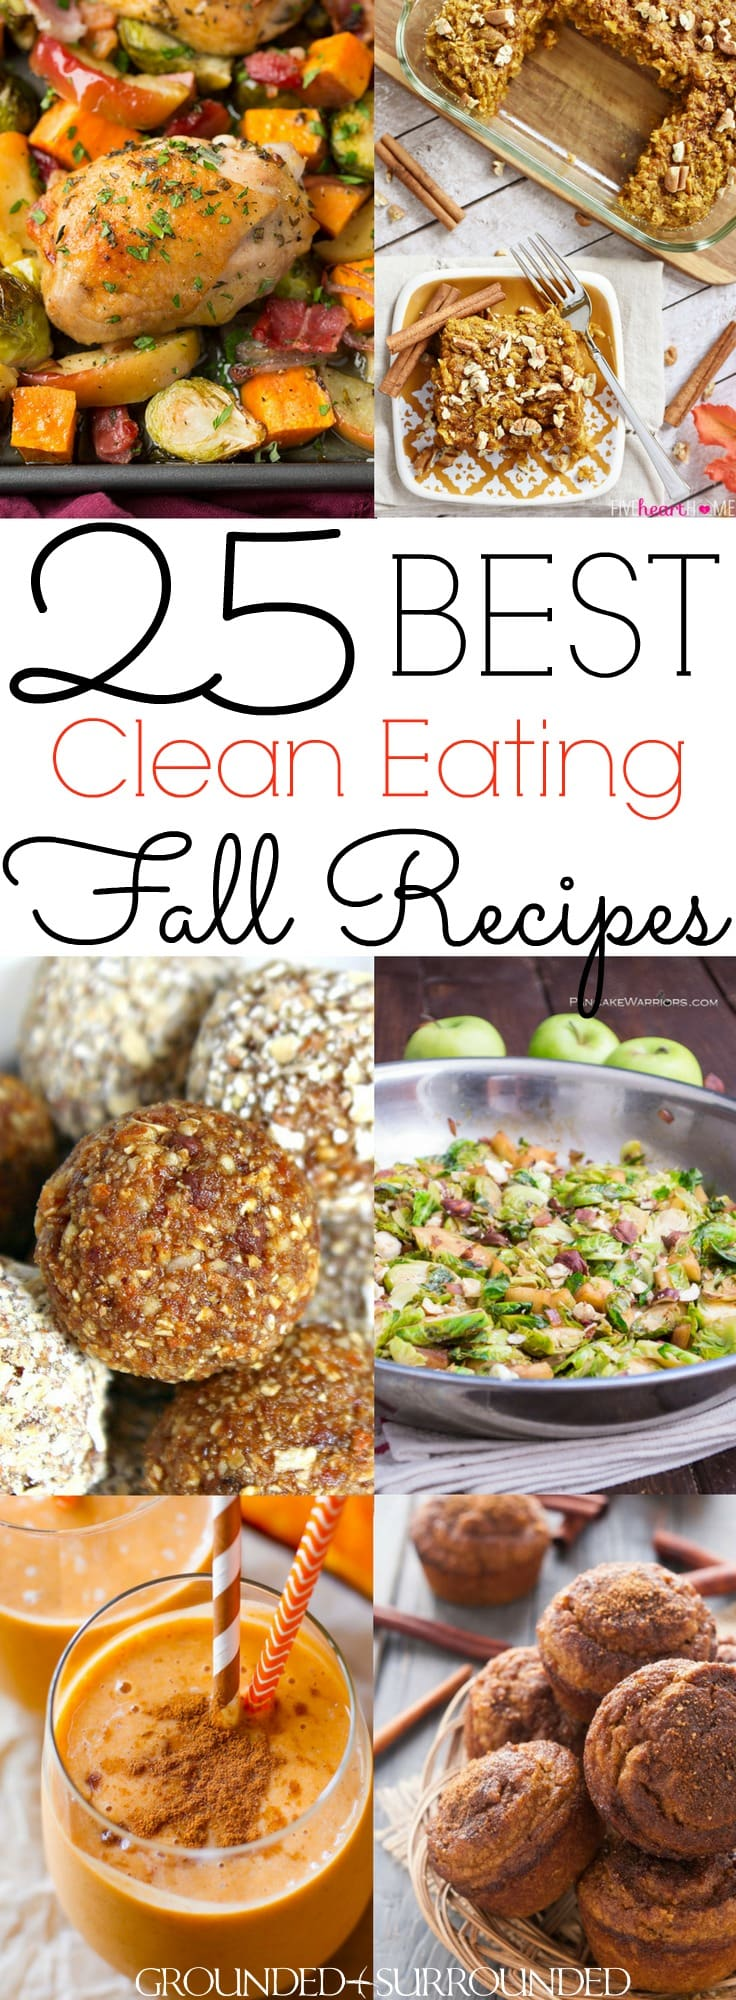 The 25 BEST Clean Eating Fall Recipes | Autumn is my favorite season to cook healthy and easy meals. You will find delicious breakfast, dinner, lunch, dessert and snack ideas. Not to mention soup, stew and drinks that use pumpkin, apple, brussels sprouts and squash recipes to satisify your need for classic, comforting and cozy flavors! Most are gluten free / Paleo / low carb / dairy free, but vegetarian and vegan substitutions can be made too.